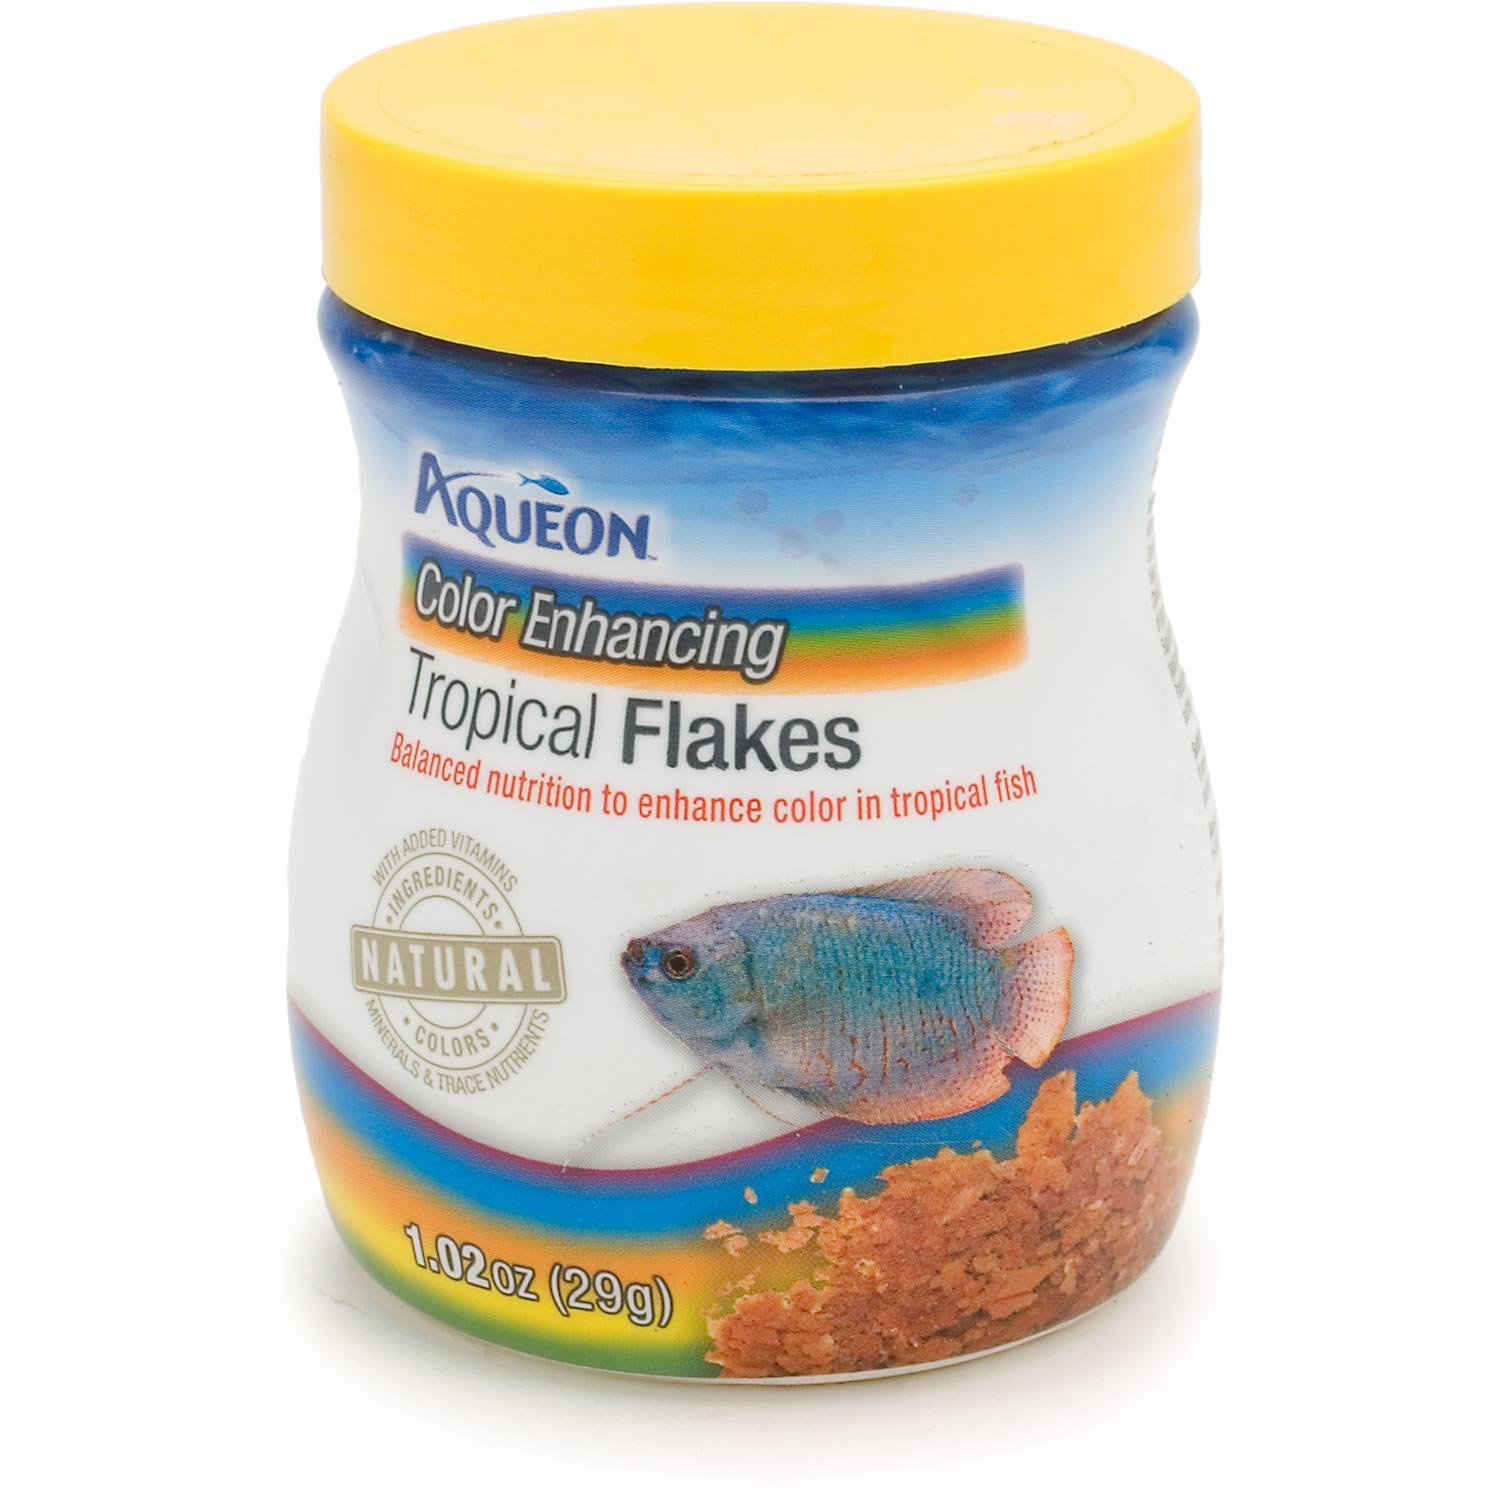 Aqueon Color Enhancing Tropical Flakes